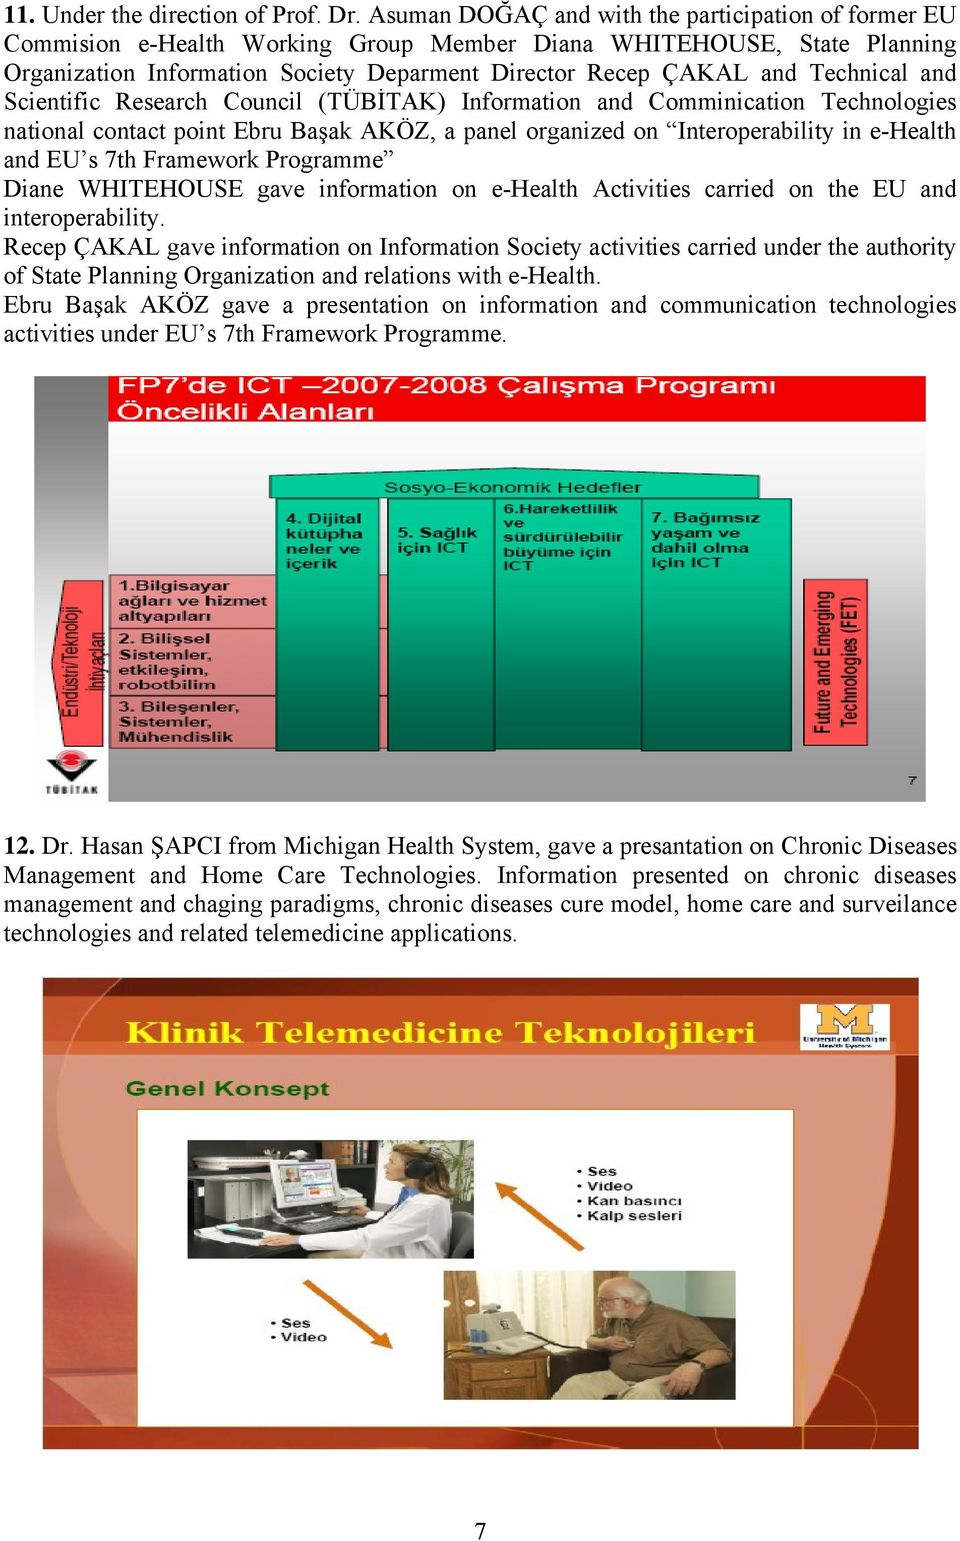 Technical and Scientific Research Council (TÜBİTAK) Information and Comminication Technologies national contact point Ebru Başak AKÖZ, a panel organized on Interoperability in e-health and EU s 7th